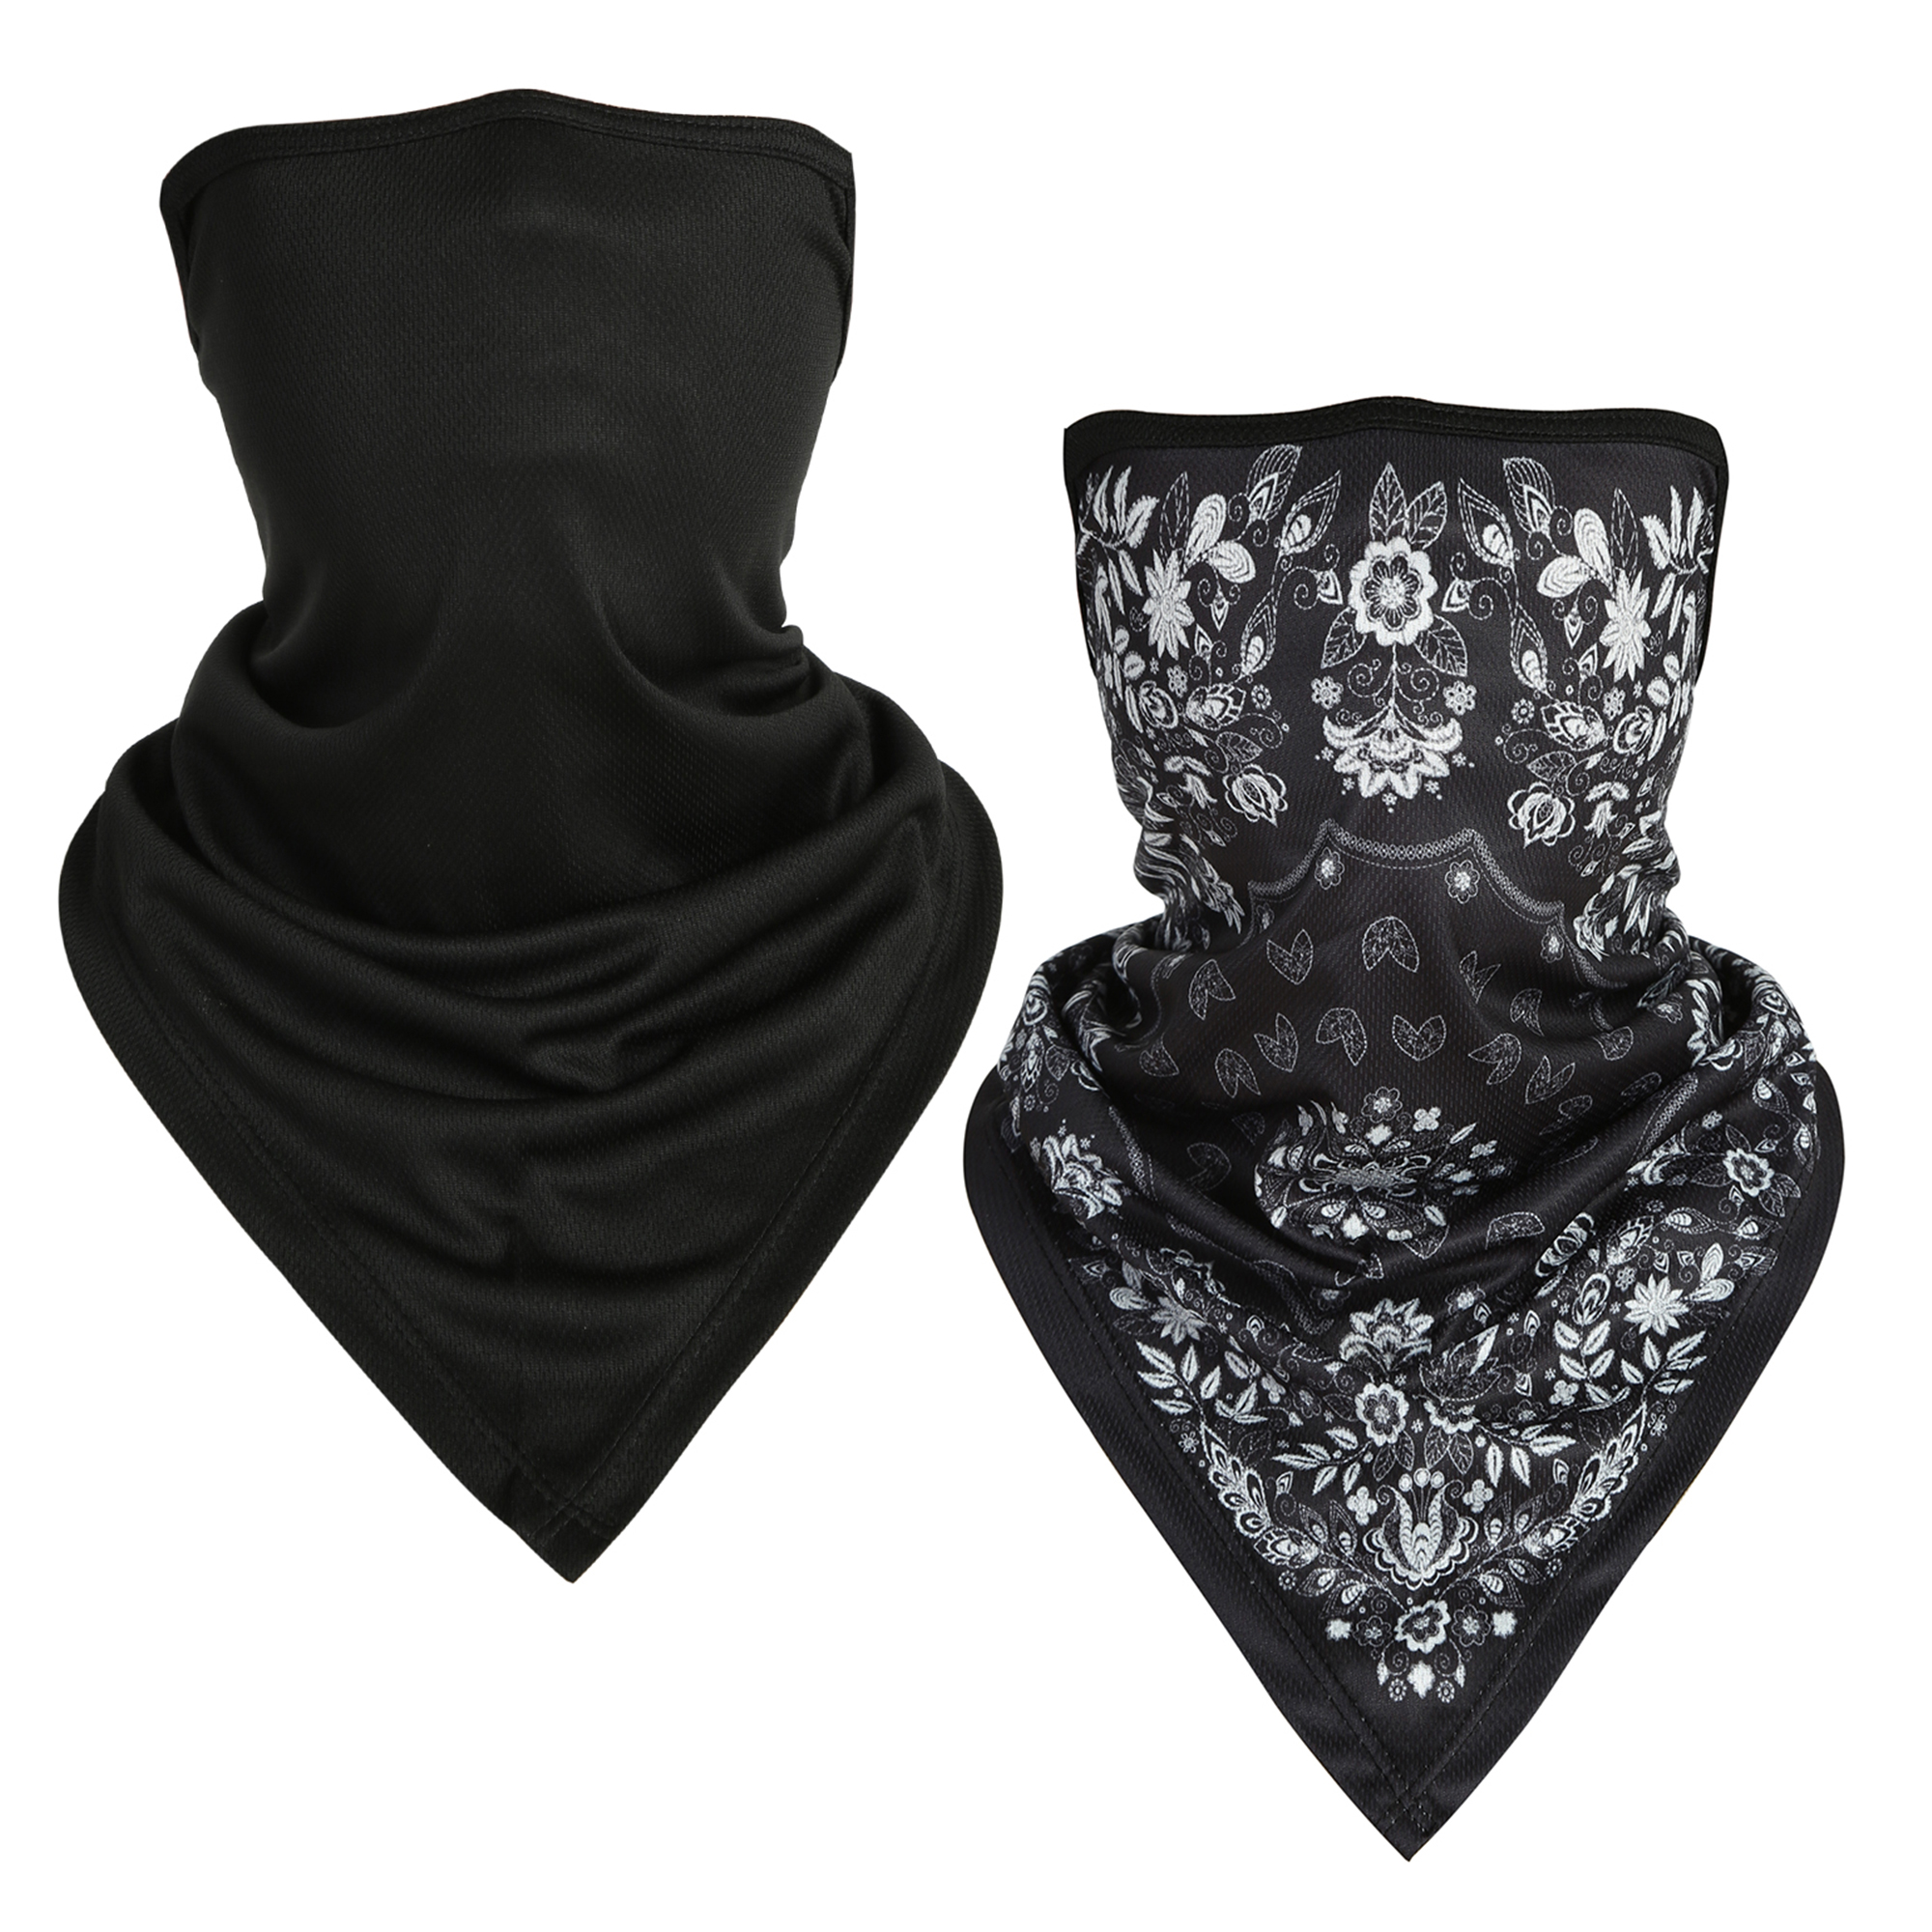 Details about  /Balaclava Neck Tube Scarf Bandana Face Cover Ear loop Headwear Sport Motorcycle